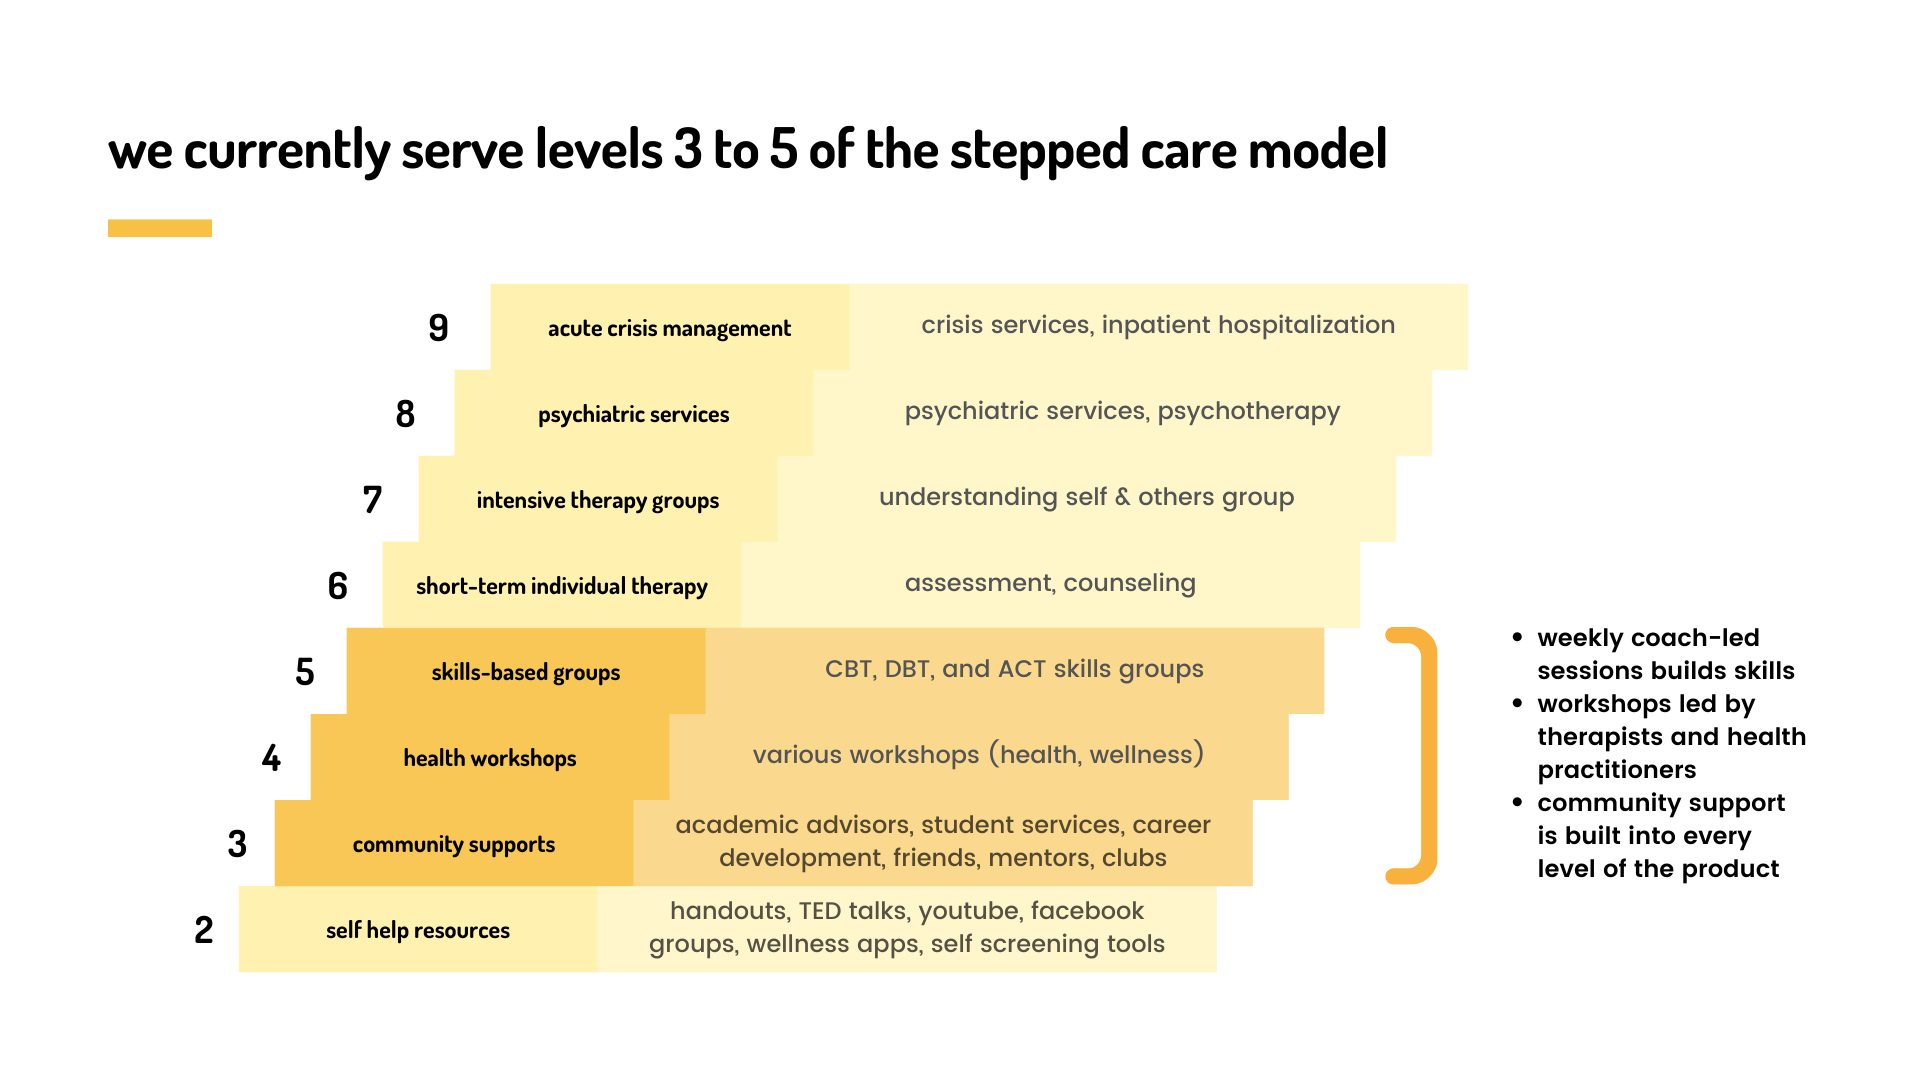 For now, we fit in levels 3 to 5 of the stepped care model